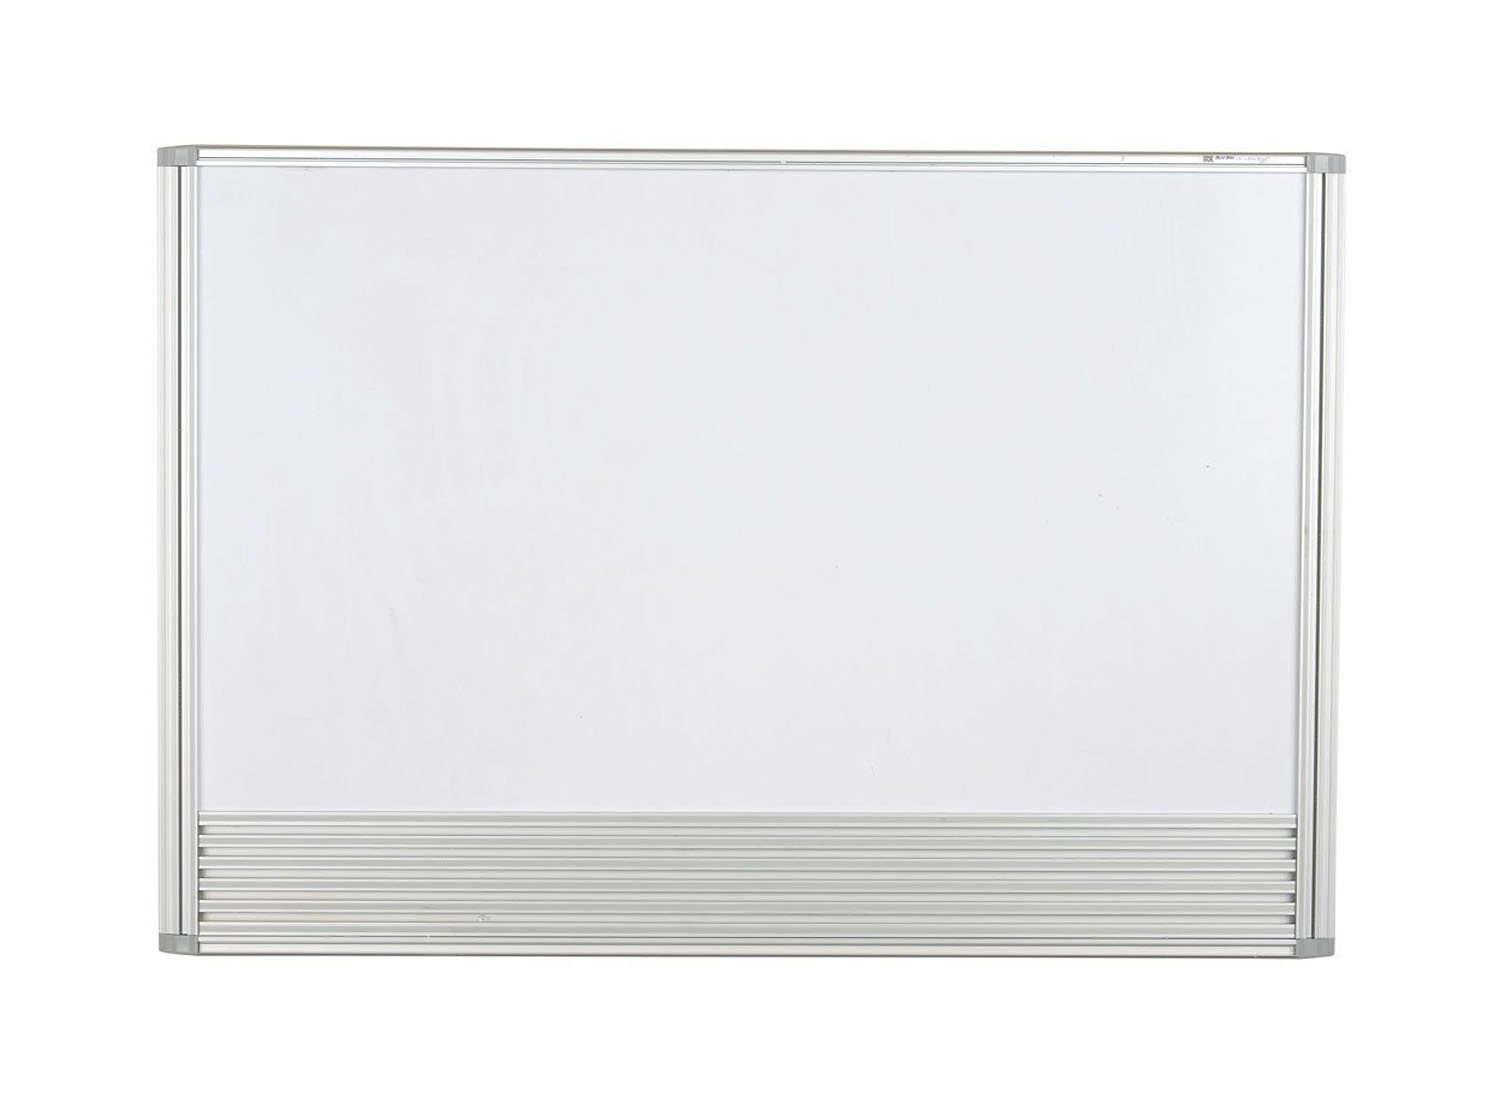 Hang-Up Board w Magne-Rite Surface (3 ft. W)